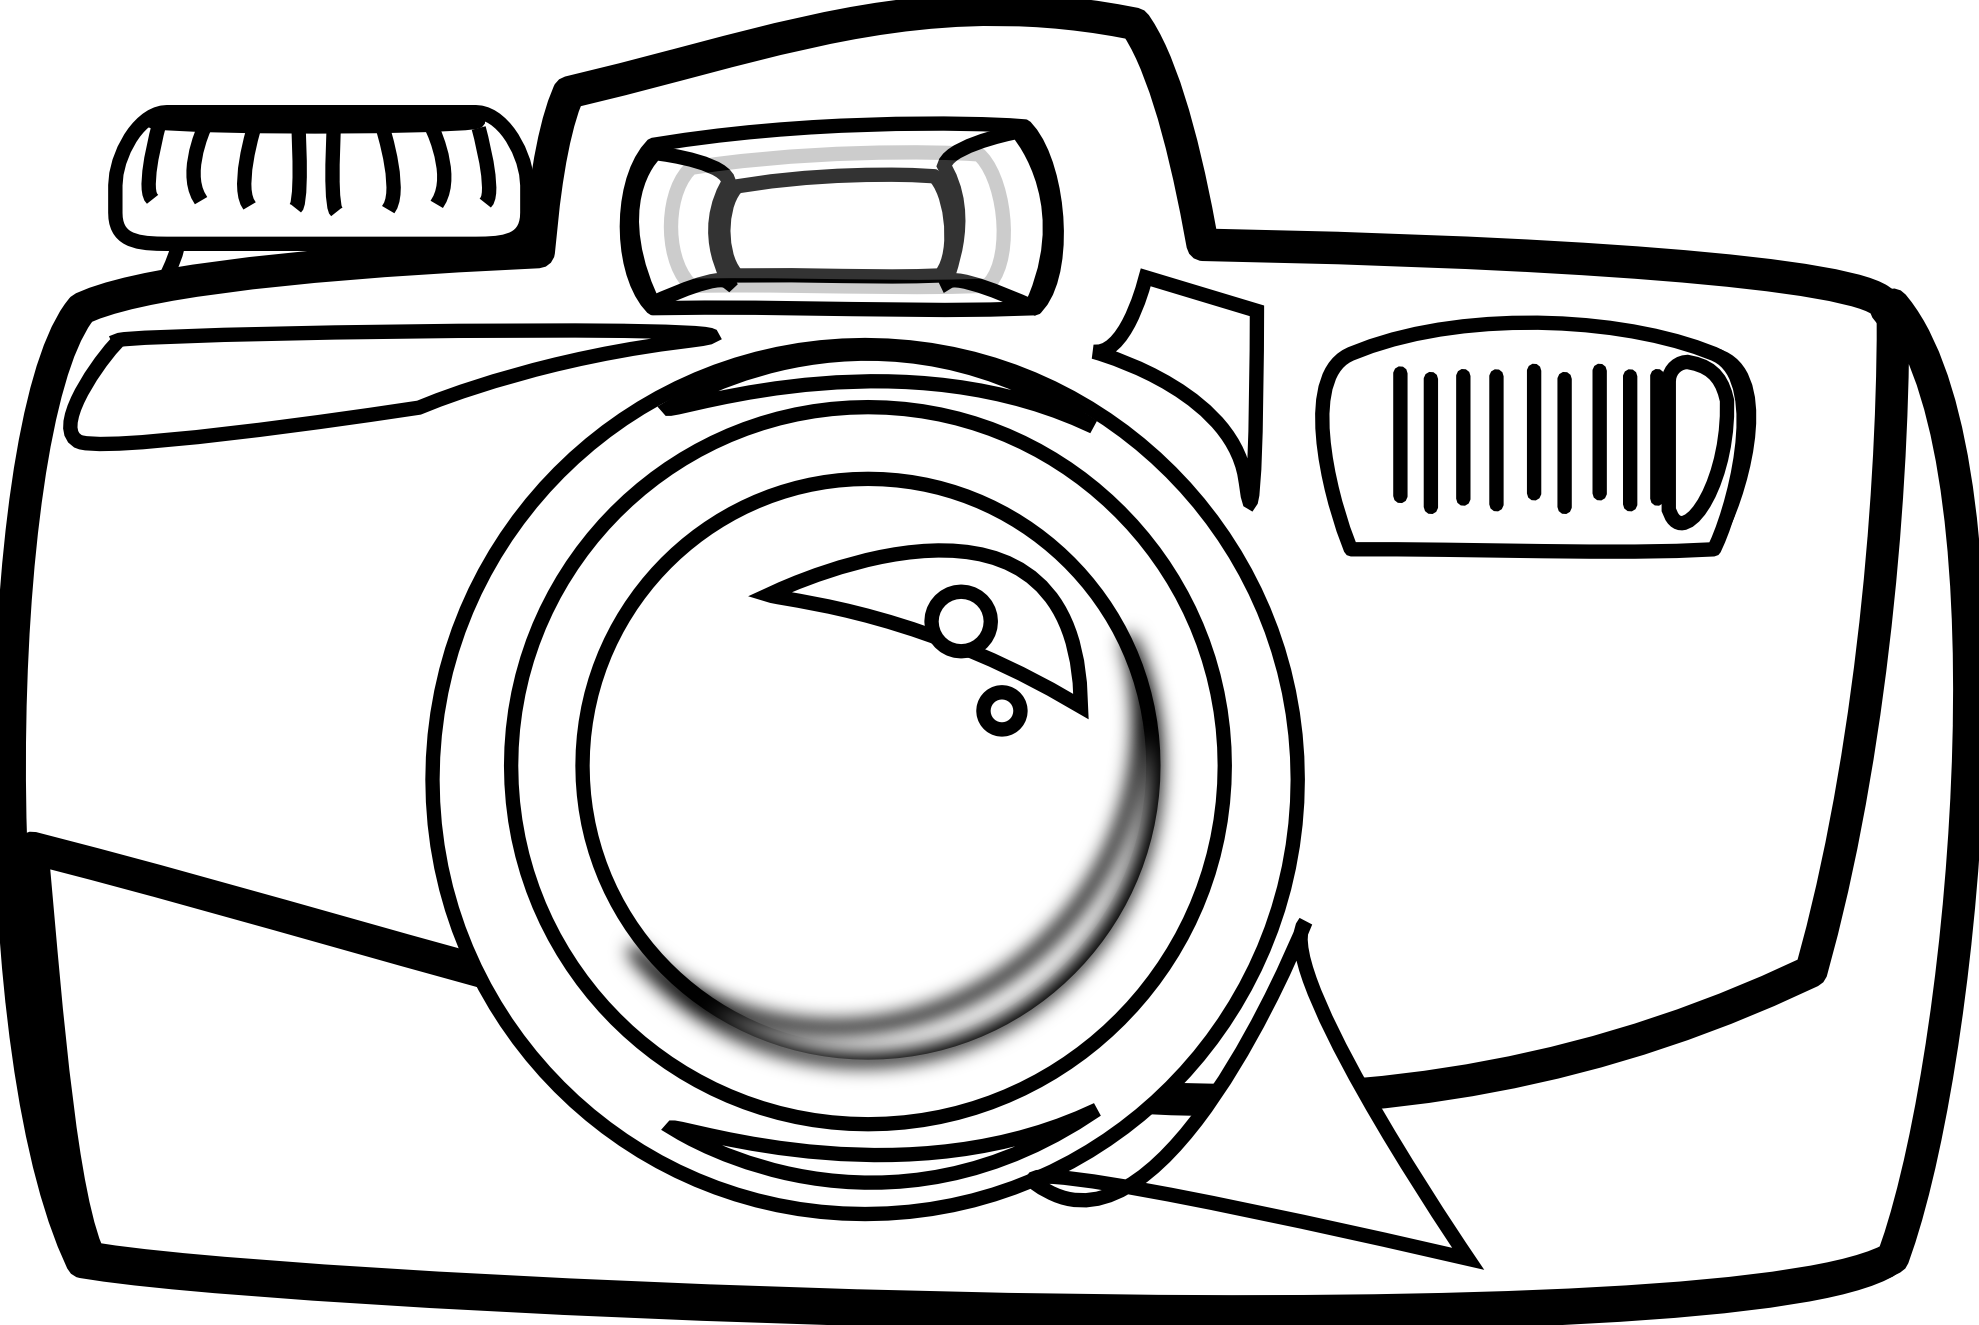 Free Camera Clipart Black And White, Download Free Clip Art.